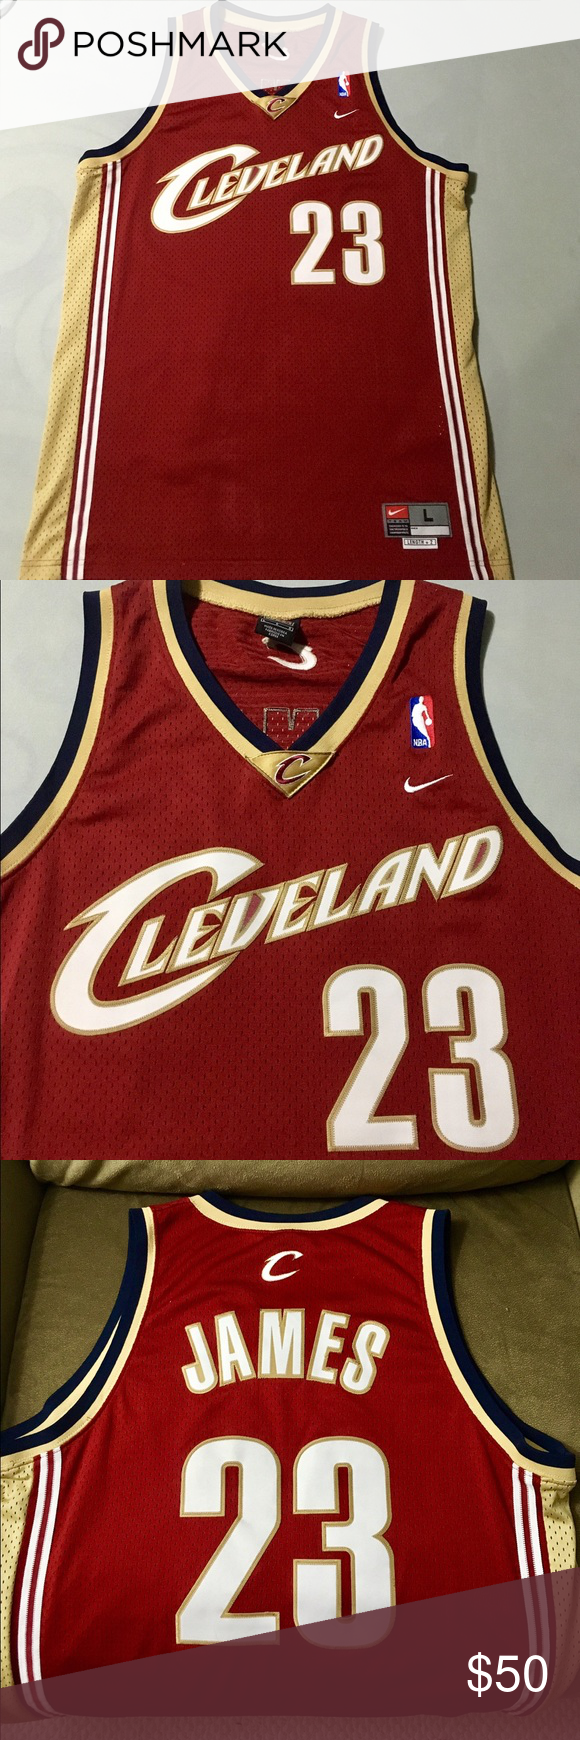 c3014dc3e8c3 ... discount code for mens authentic lebron james cavs away jersey l  authentic lebron james maroon away official store youth cleveland ...